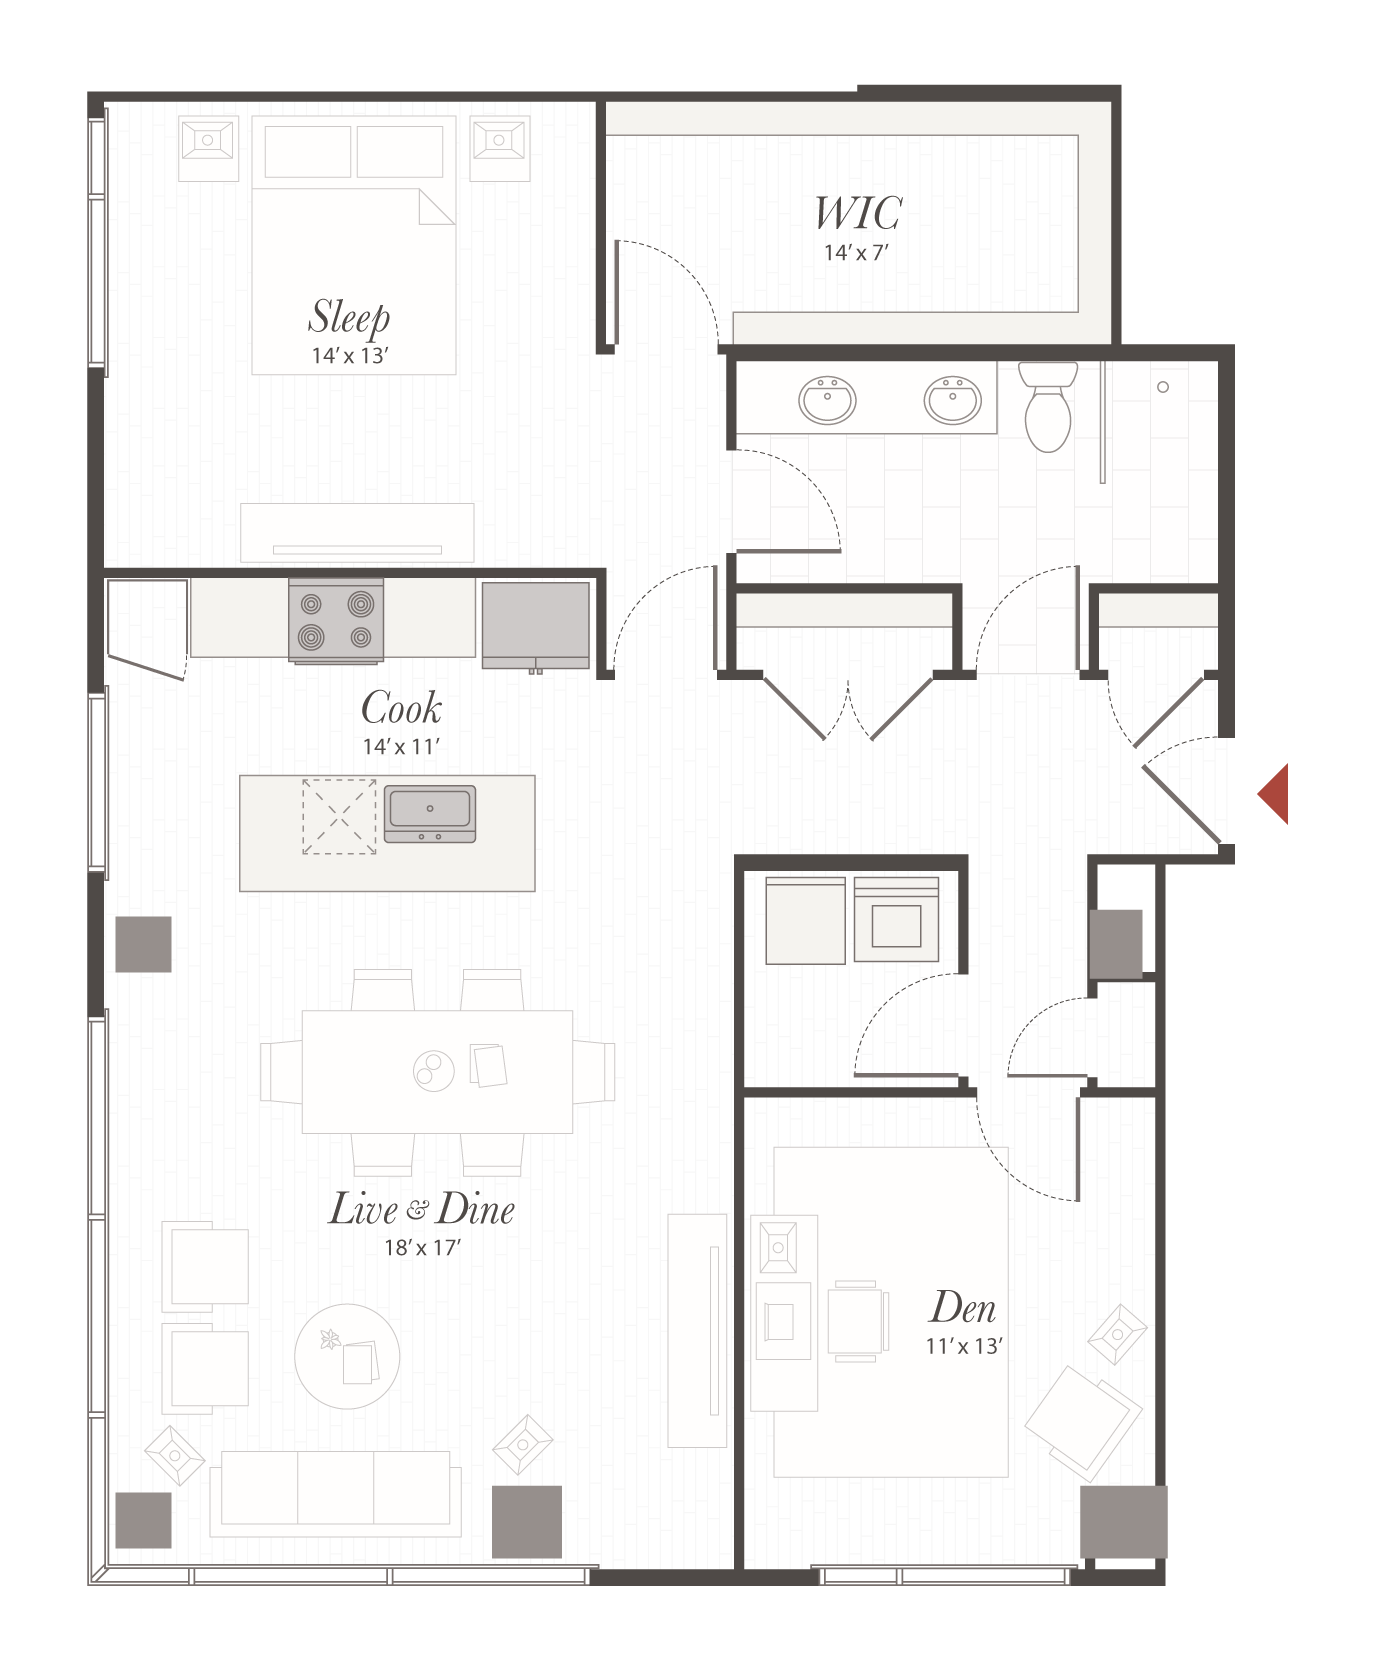 P10 floor plan 1 bedroom with den apartment cincinnati oh for Apartment floor plans 1 bedroom with den